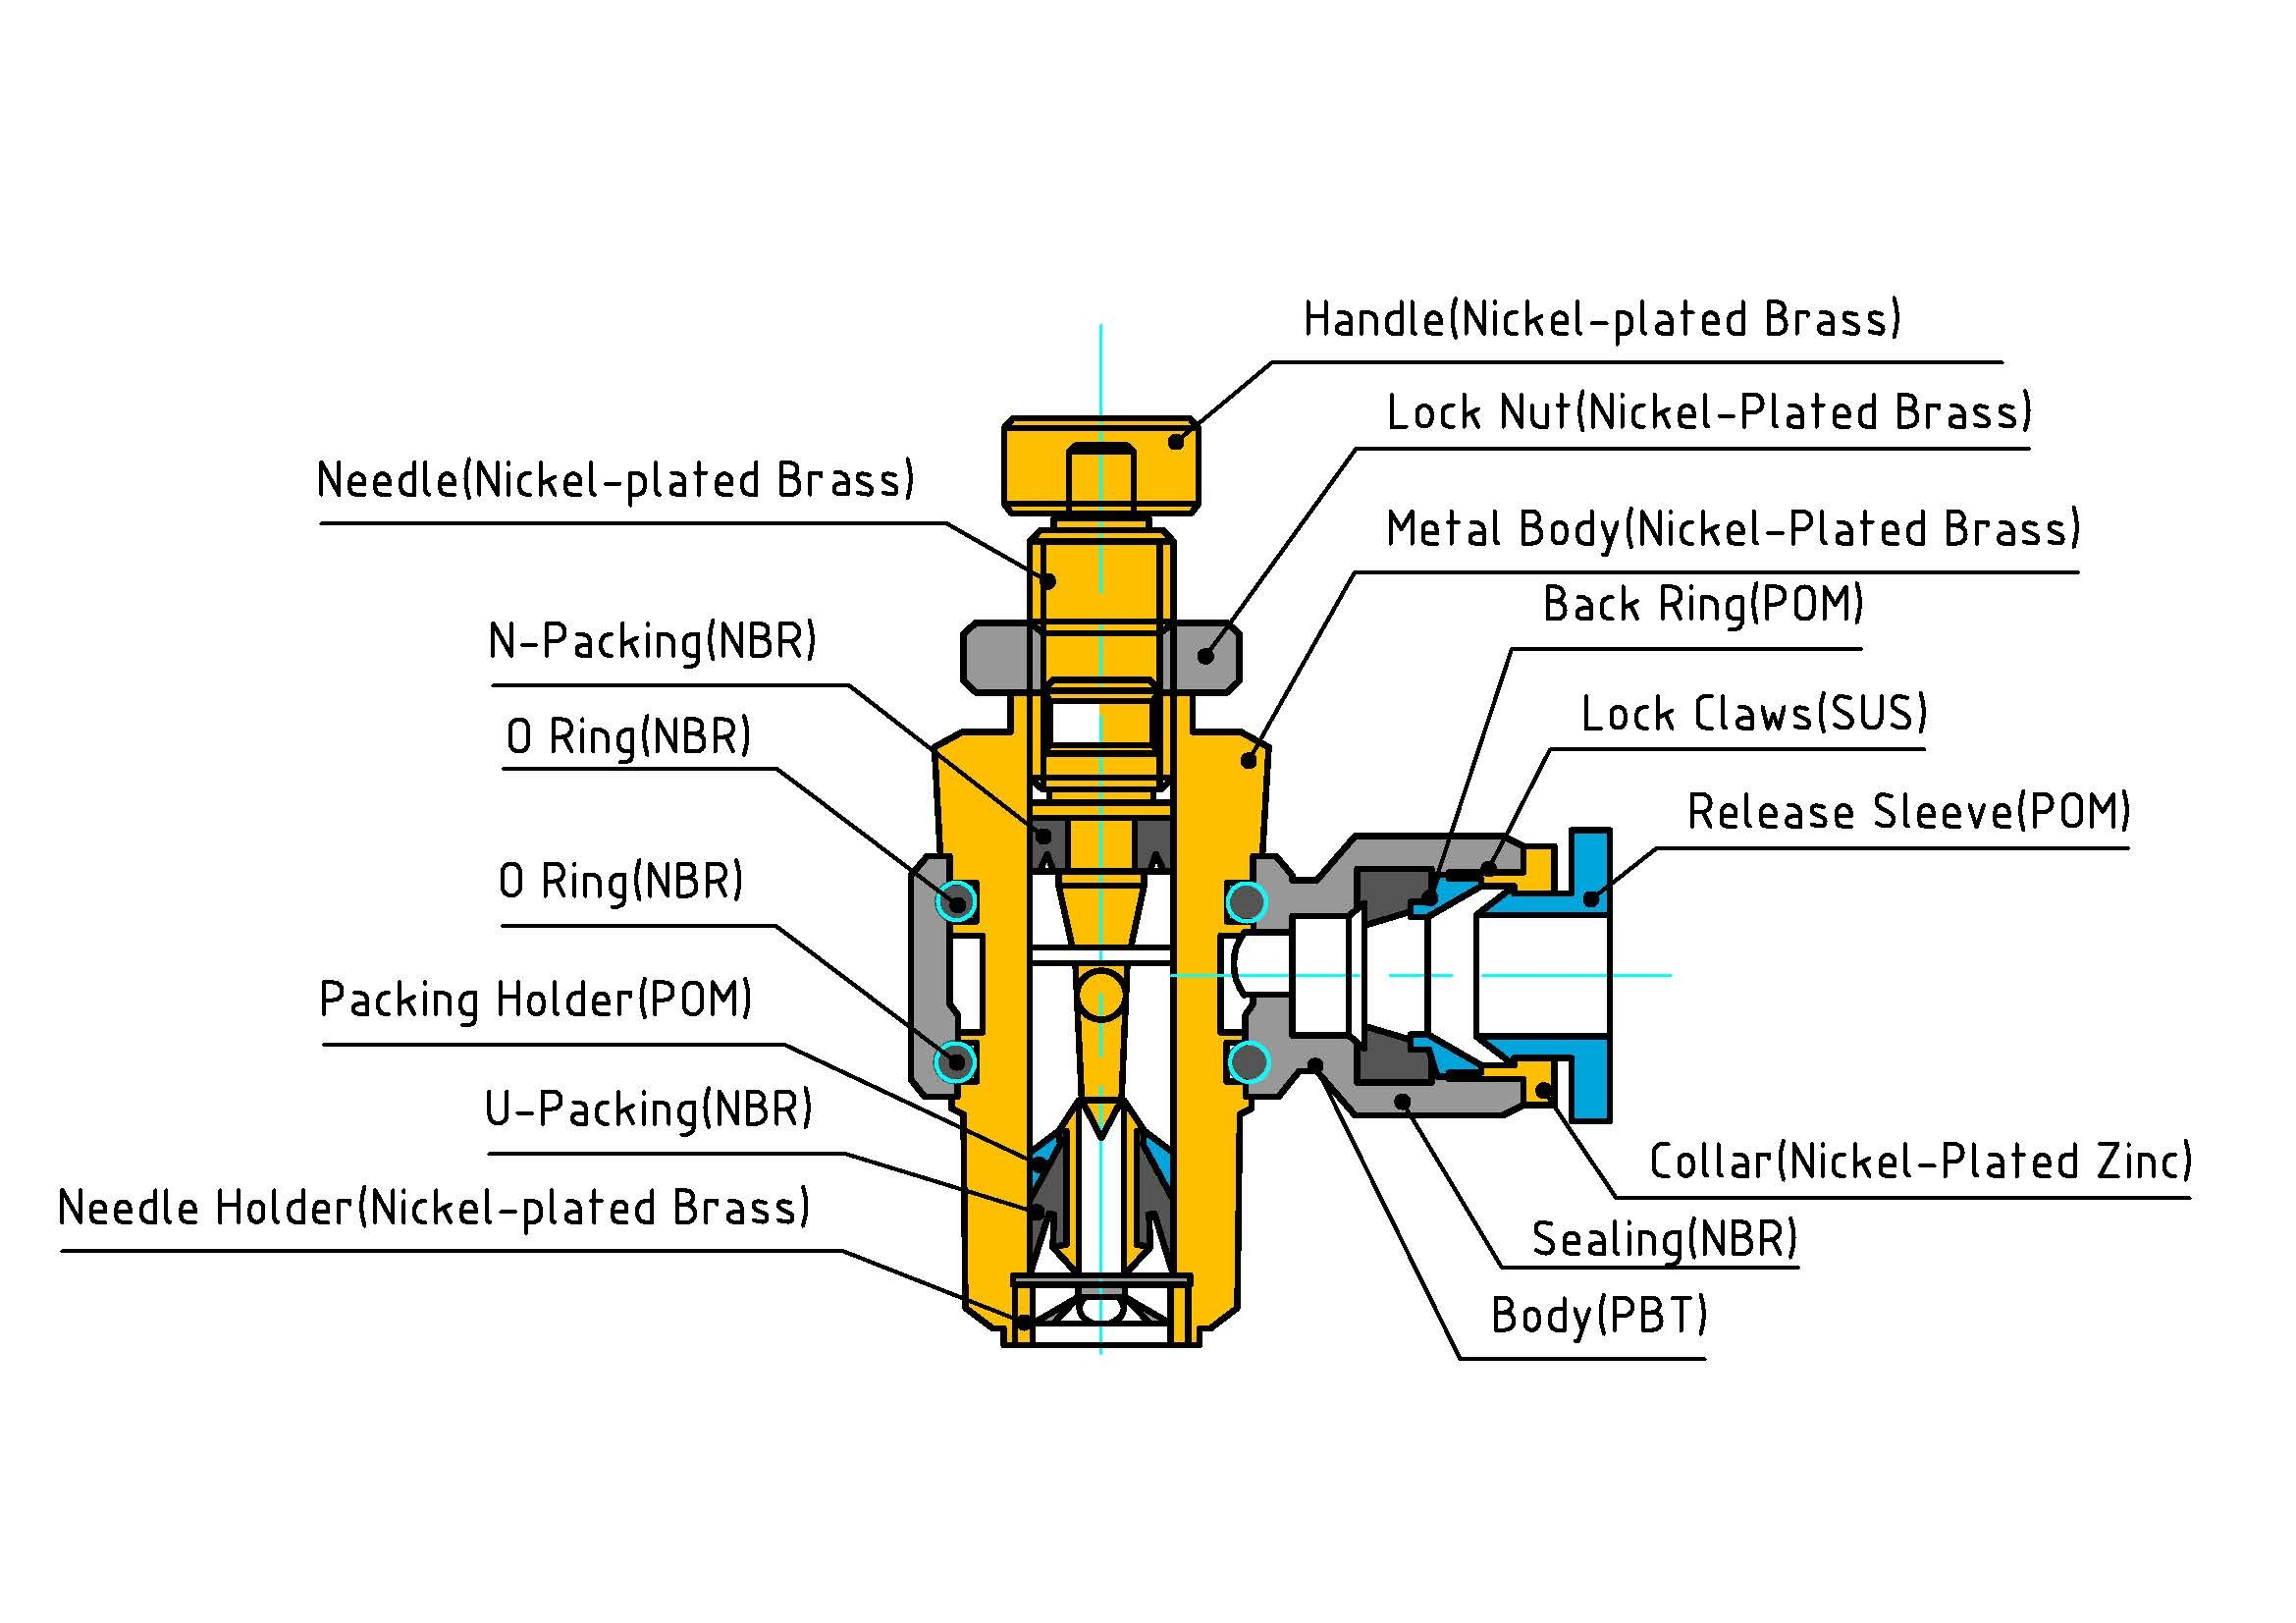 Valve Train Diagram the Difference Between Pneumatic Meter Out and Meter In Throttle Of Valve Train Diagram